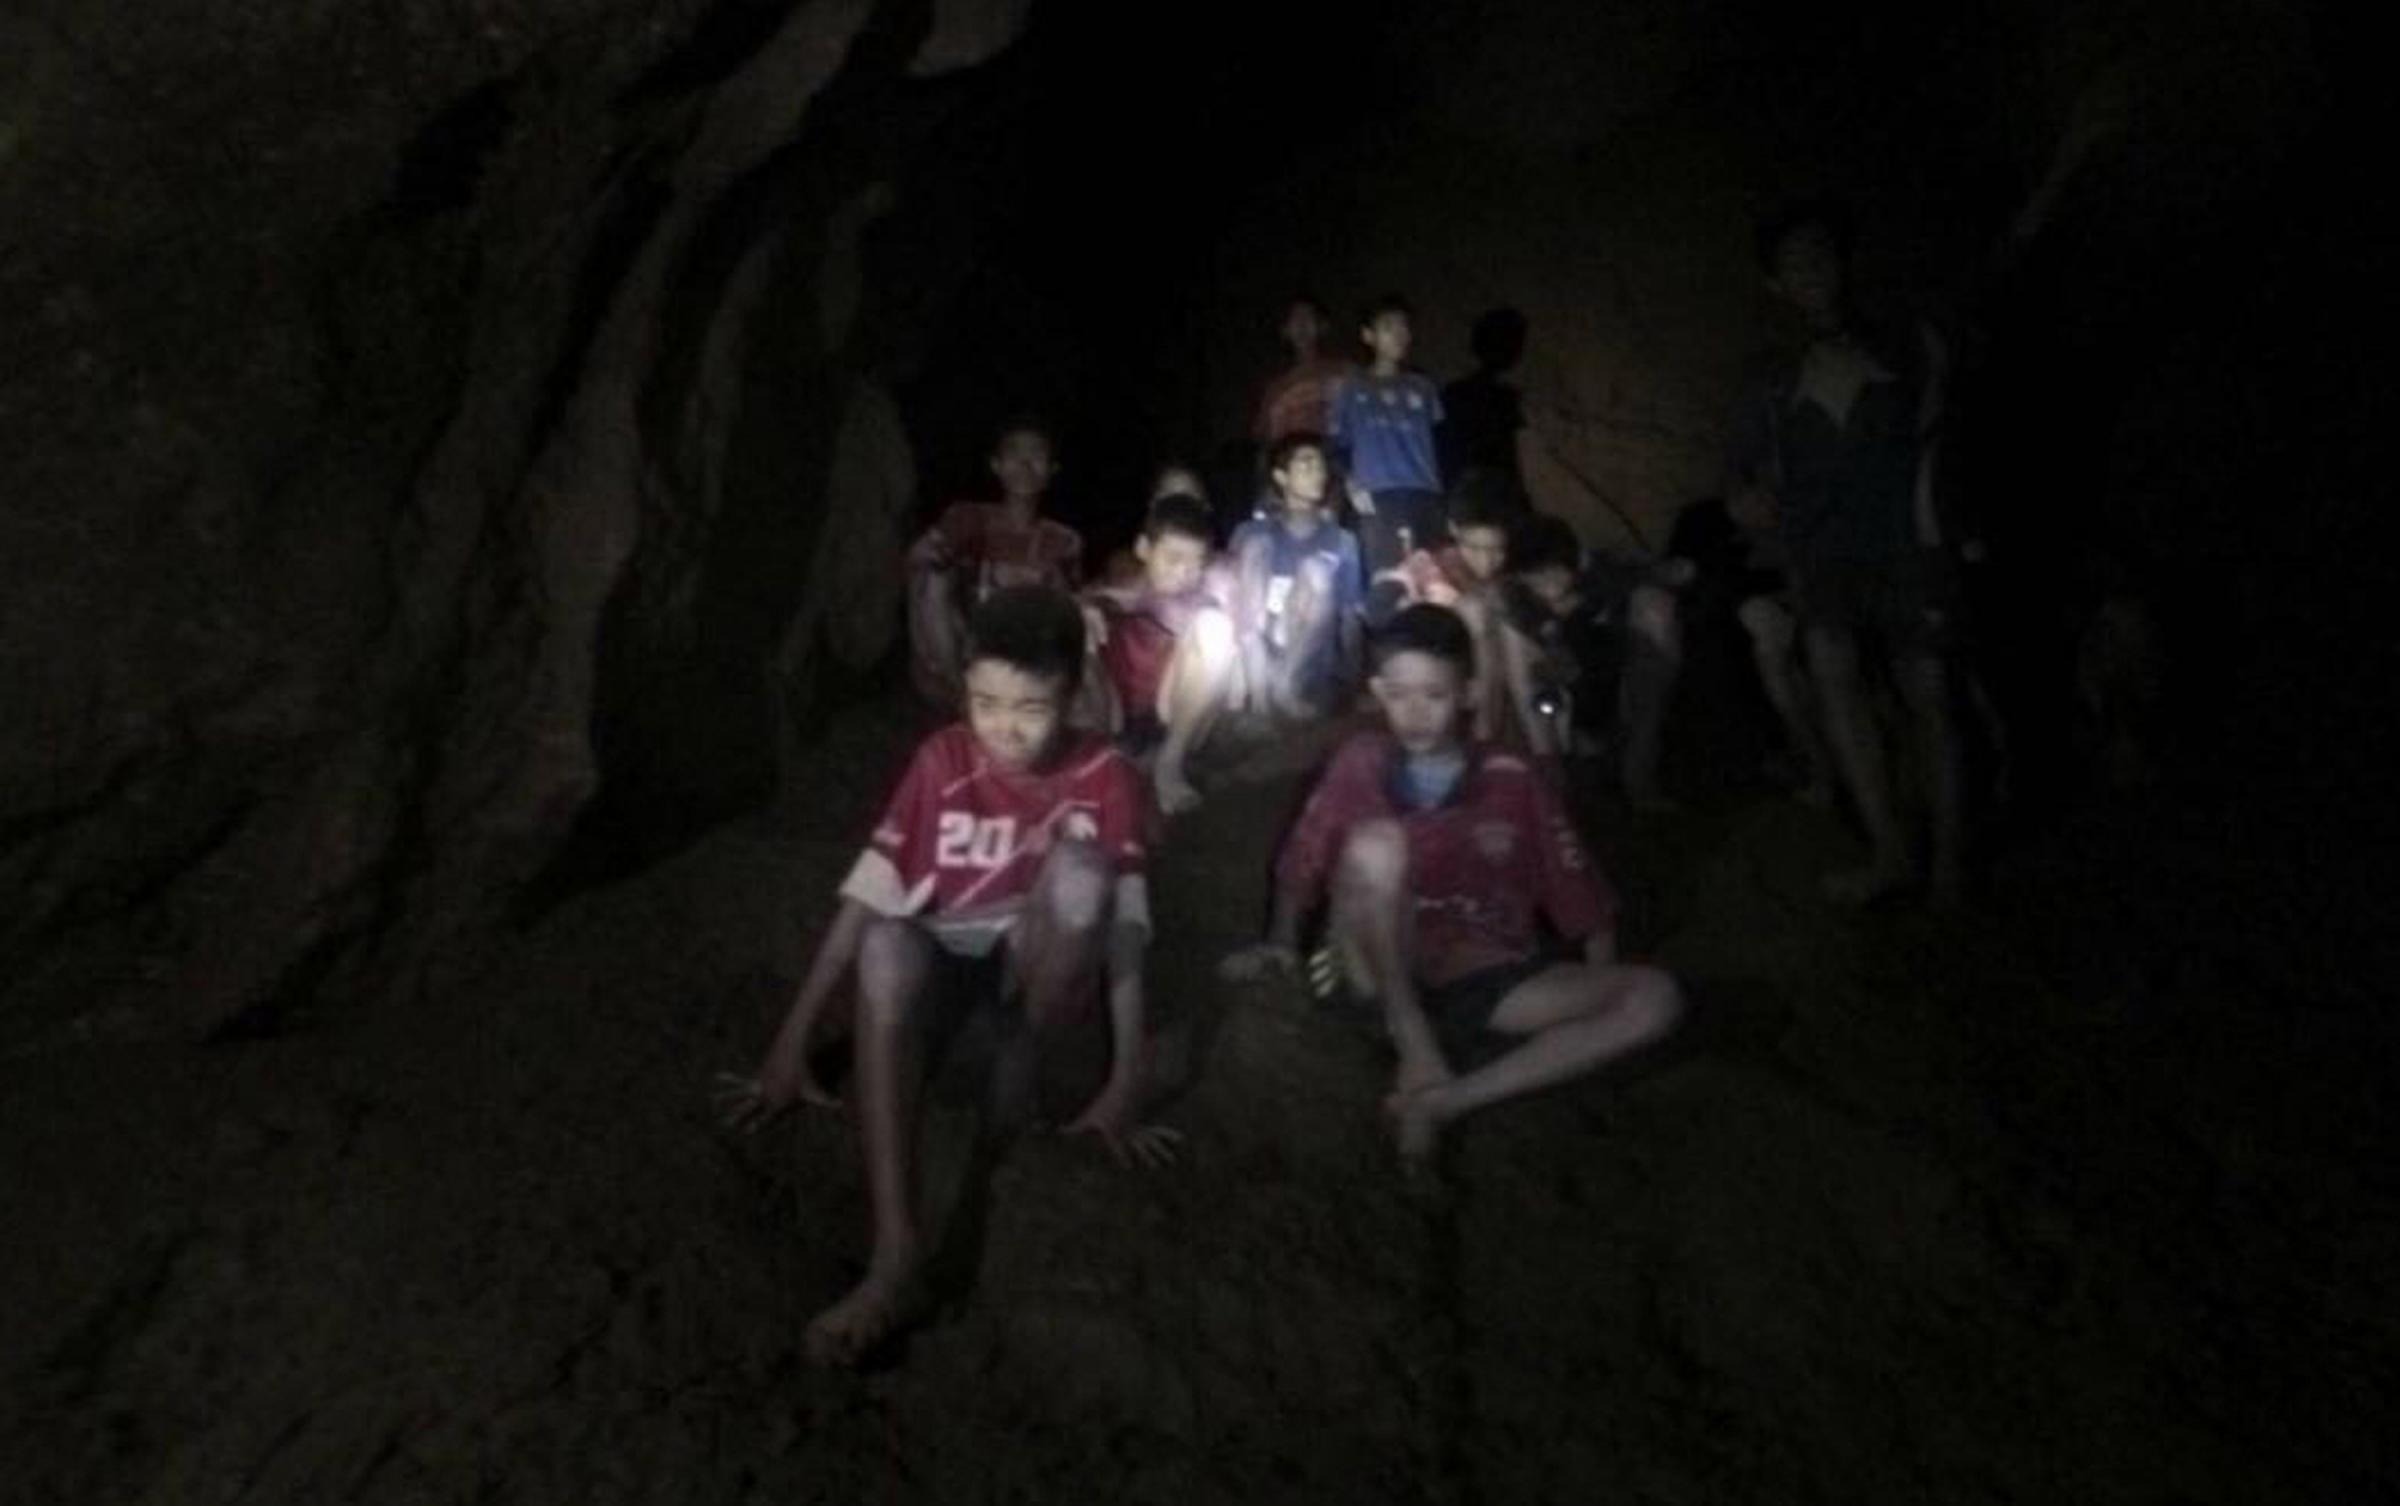 The boys will remain in the cave until authorities decide if it is safe to remove them